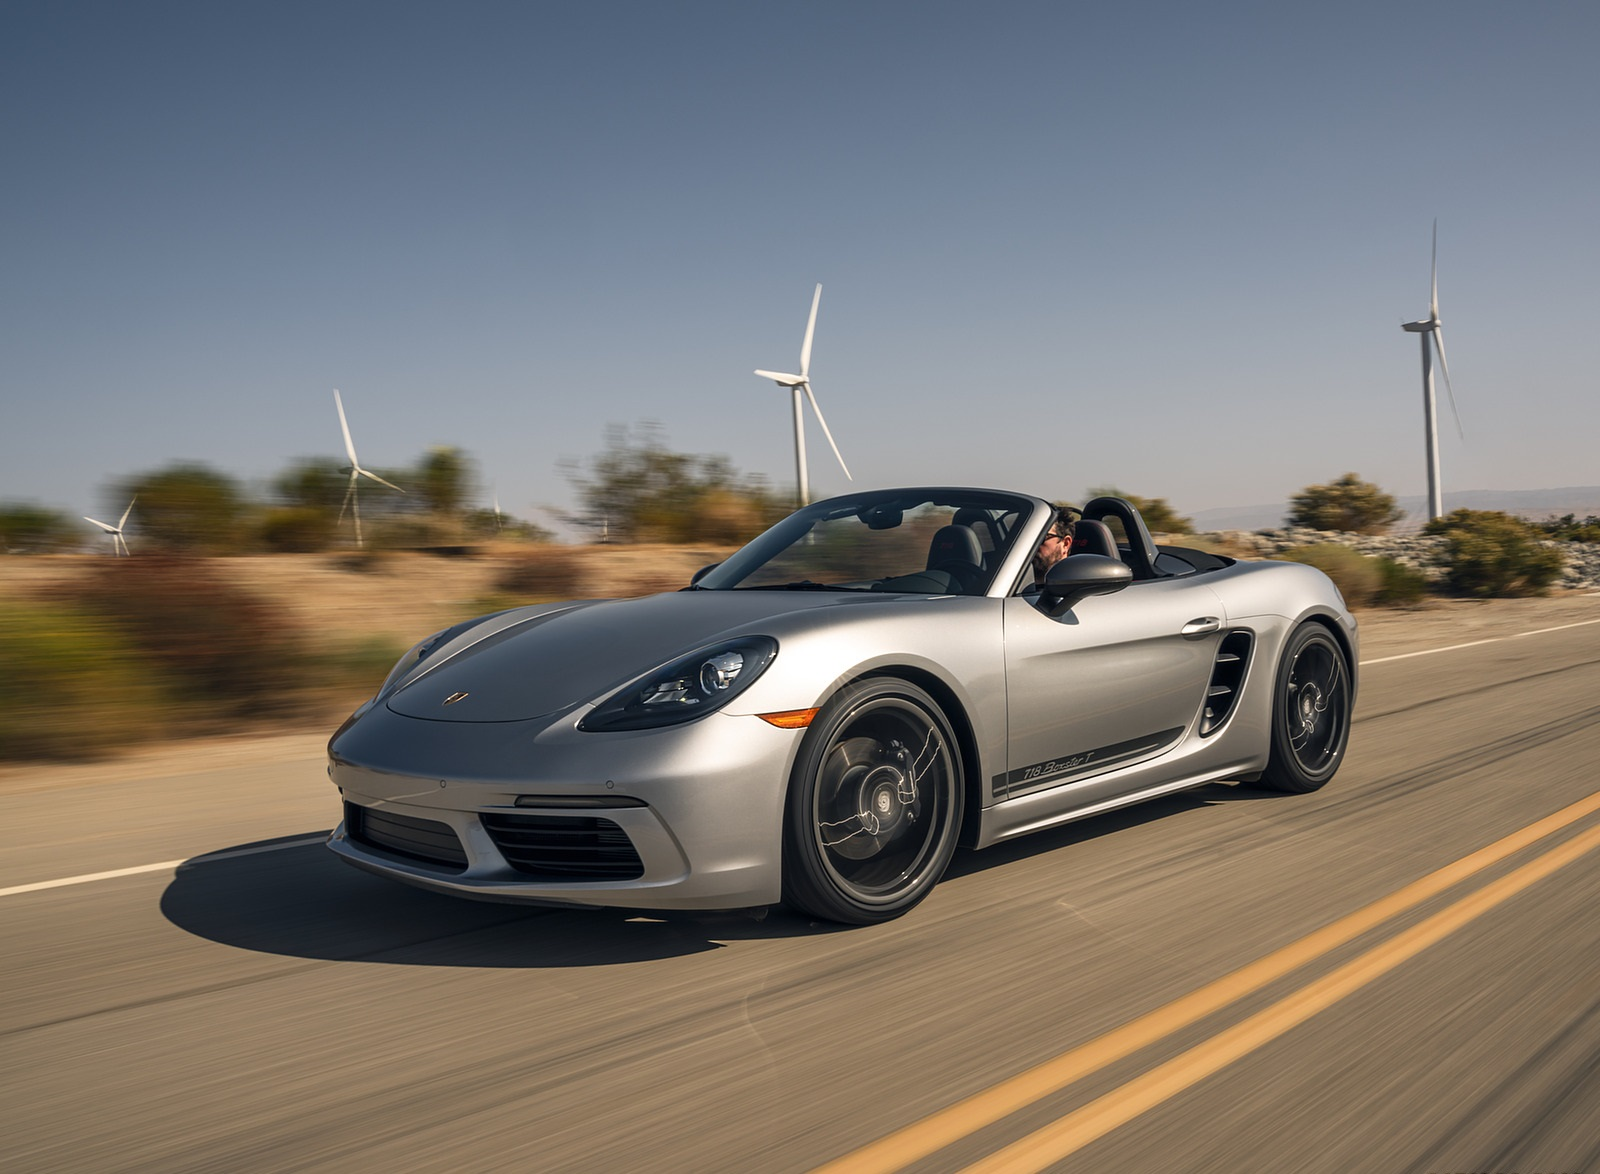 2020 Porsche 718 Boxster T Wallpapers 40 Hd Images Newcarcars